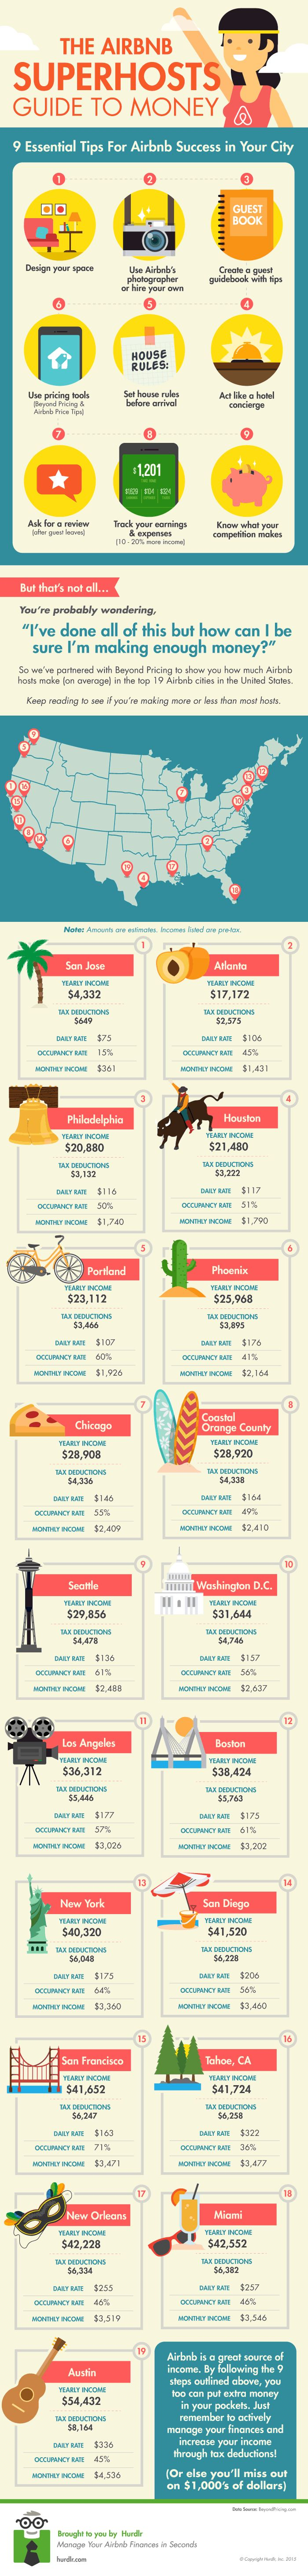 The Airbnb SuperHost Guide To Money #infographic #Travel